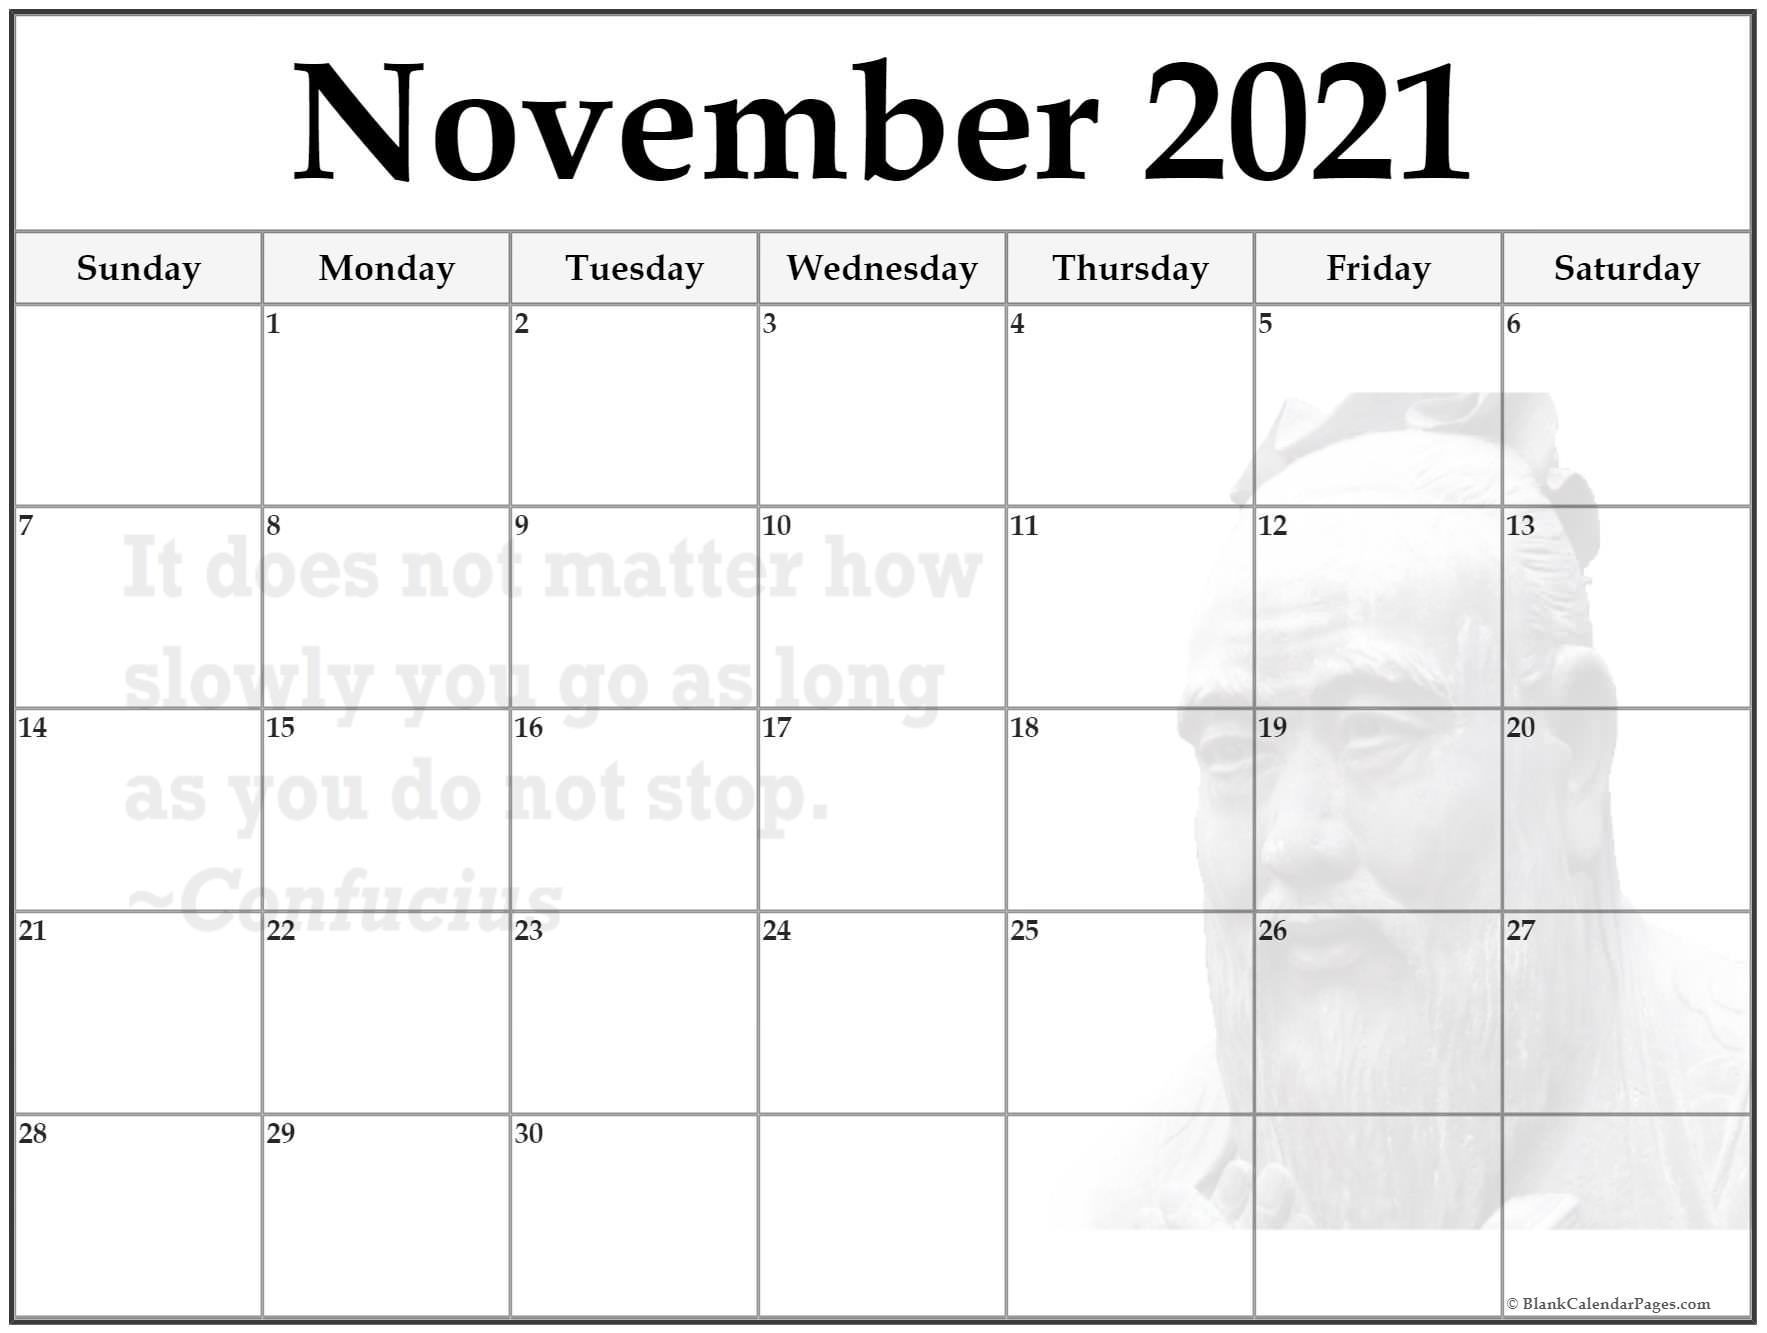 November 2020 monthly calendar template. It does not matter how slowly you go as long as you don't stop ~Confucius